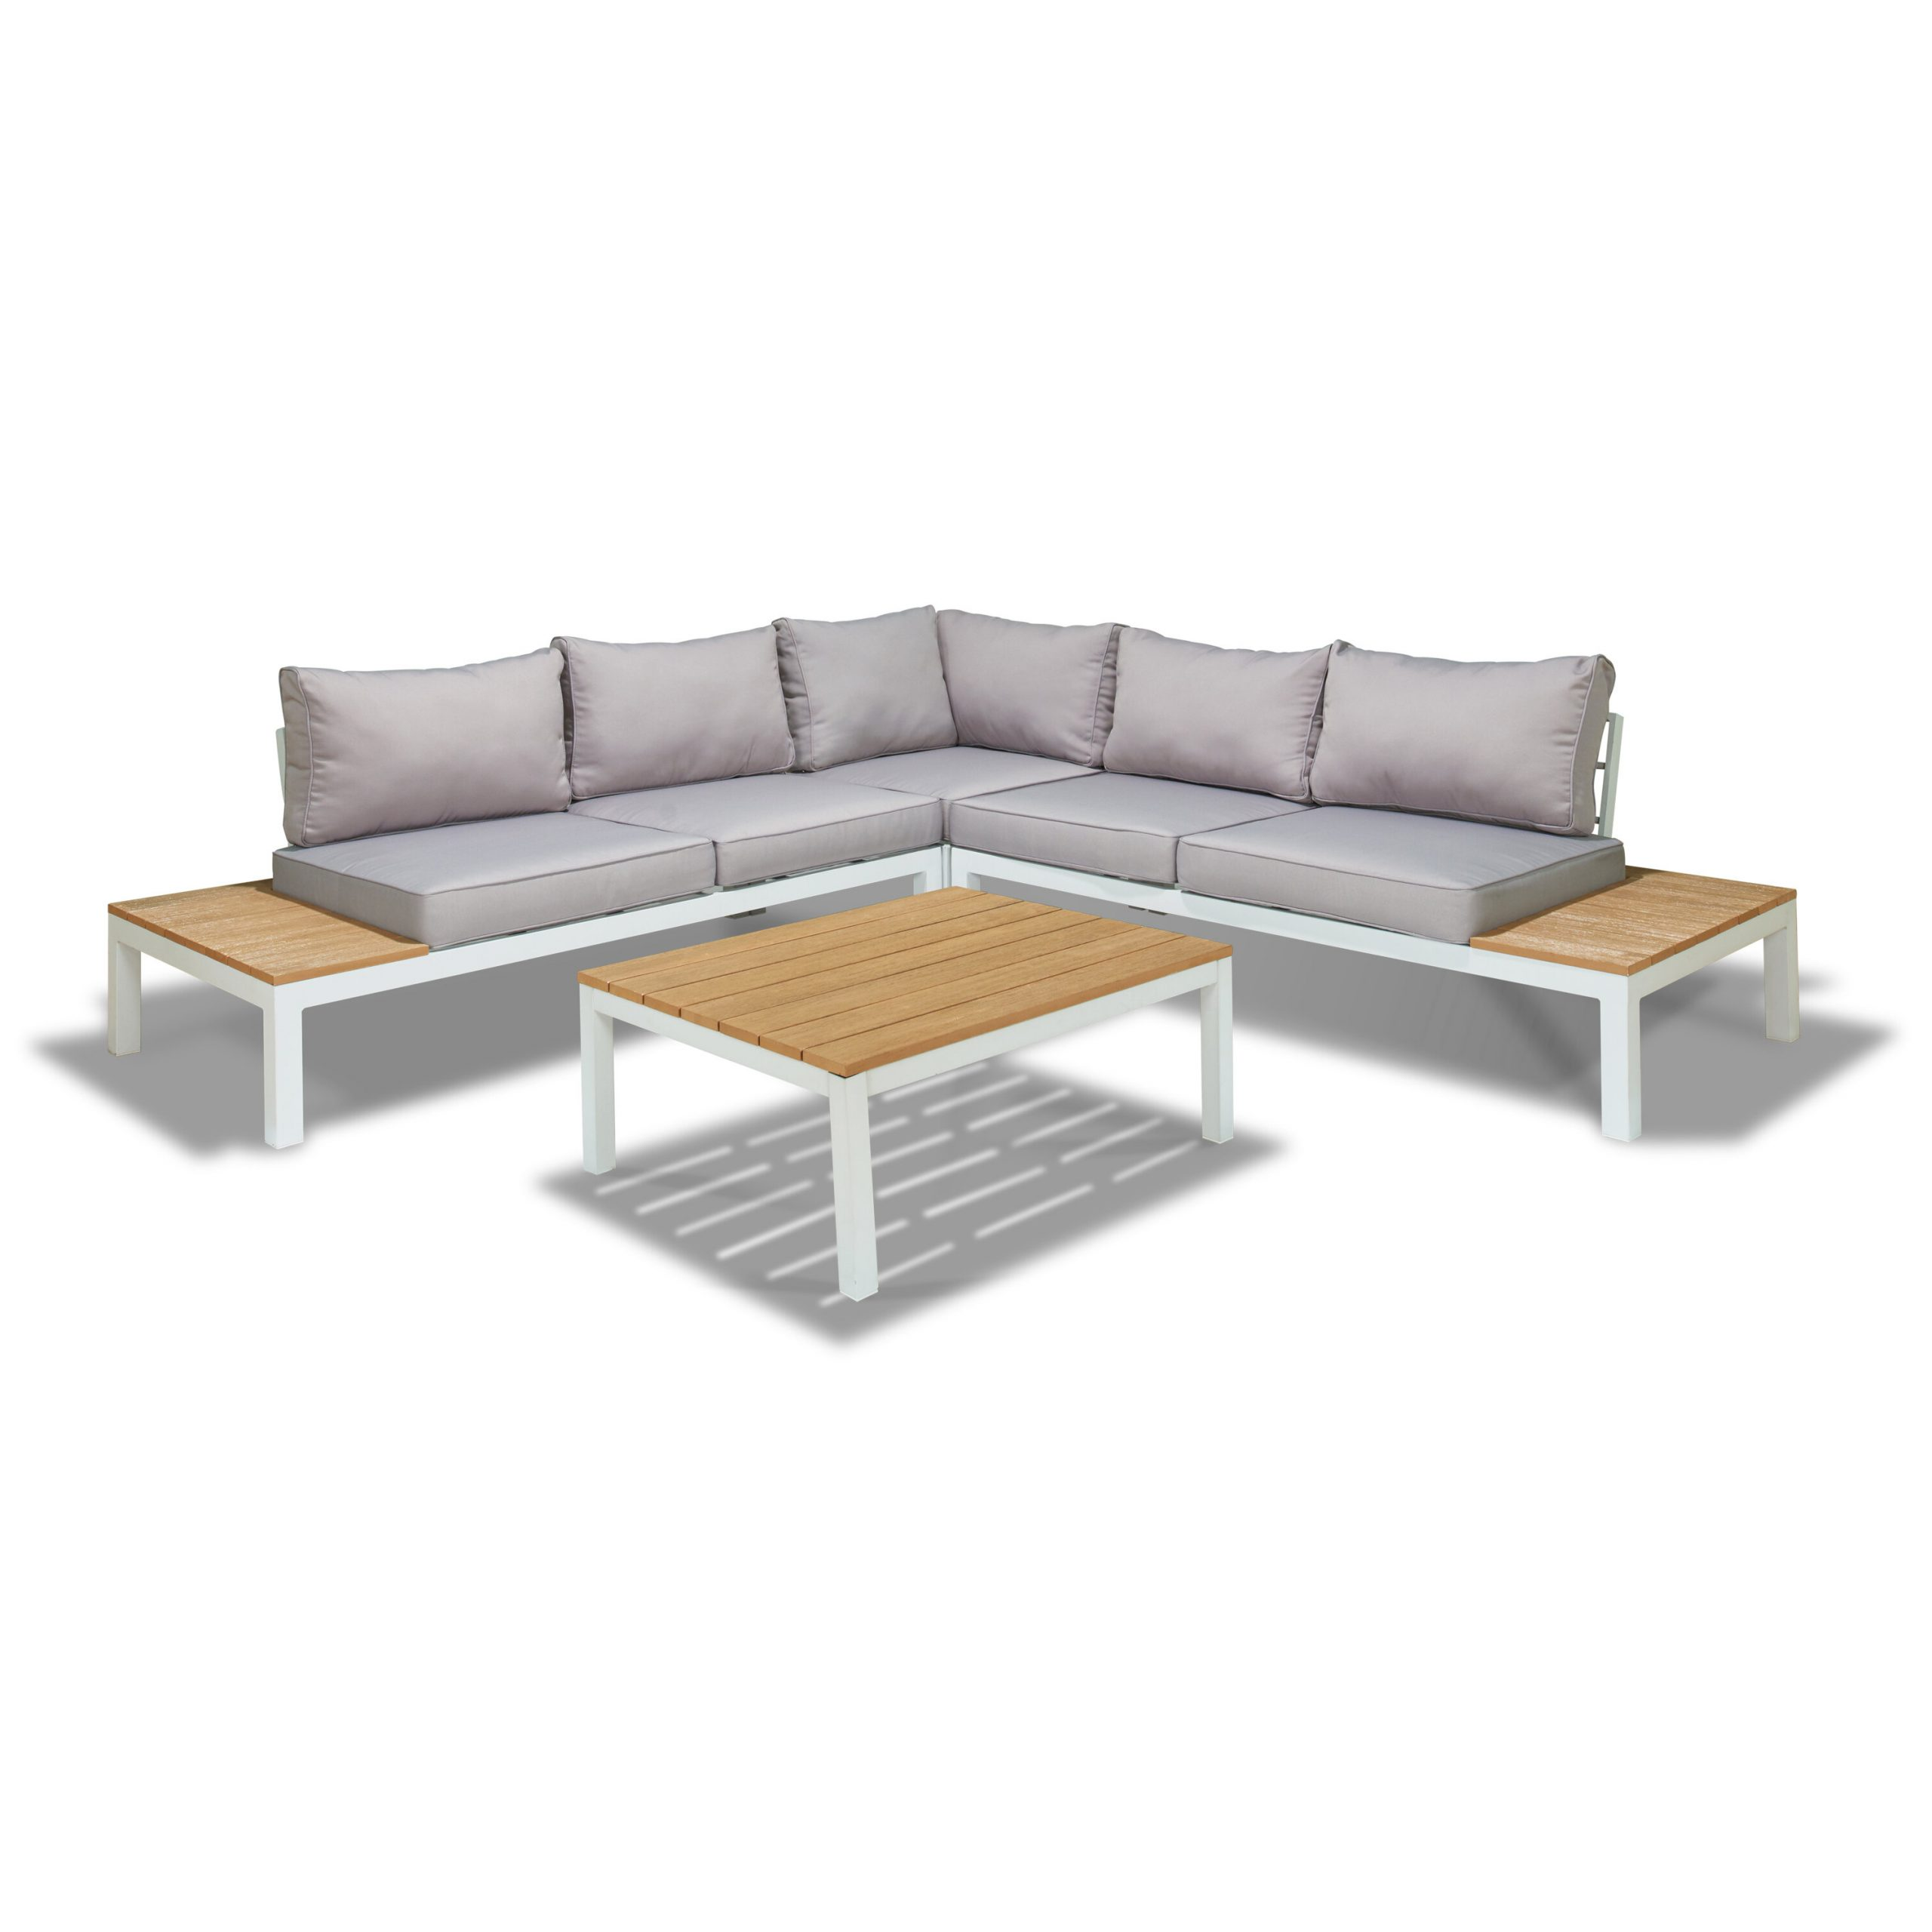 Schneider 4 Piece Sectional Seating Group With Cushion Within 2020 Olinda 3 Piece Sectionals Seating Group With Cushions (View 14 of 25)